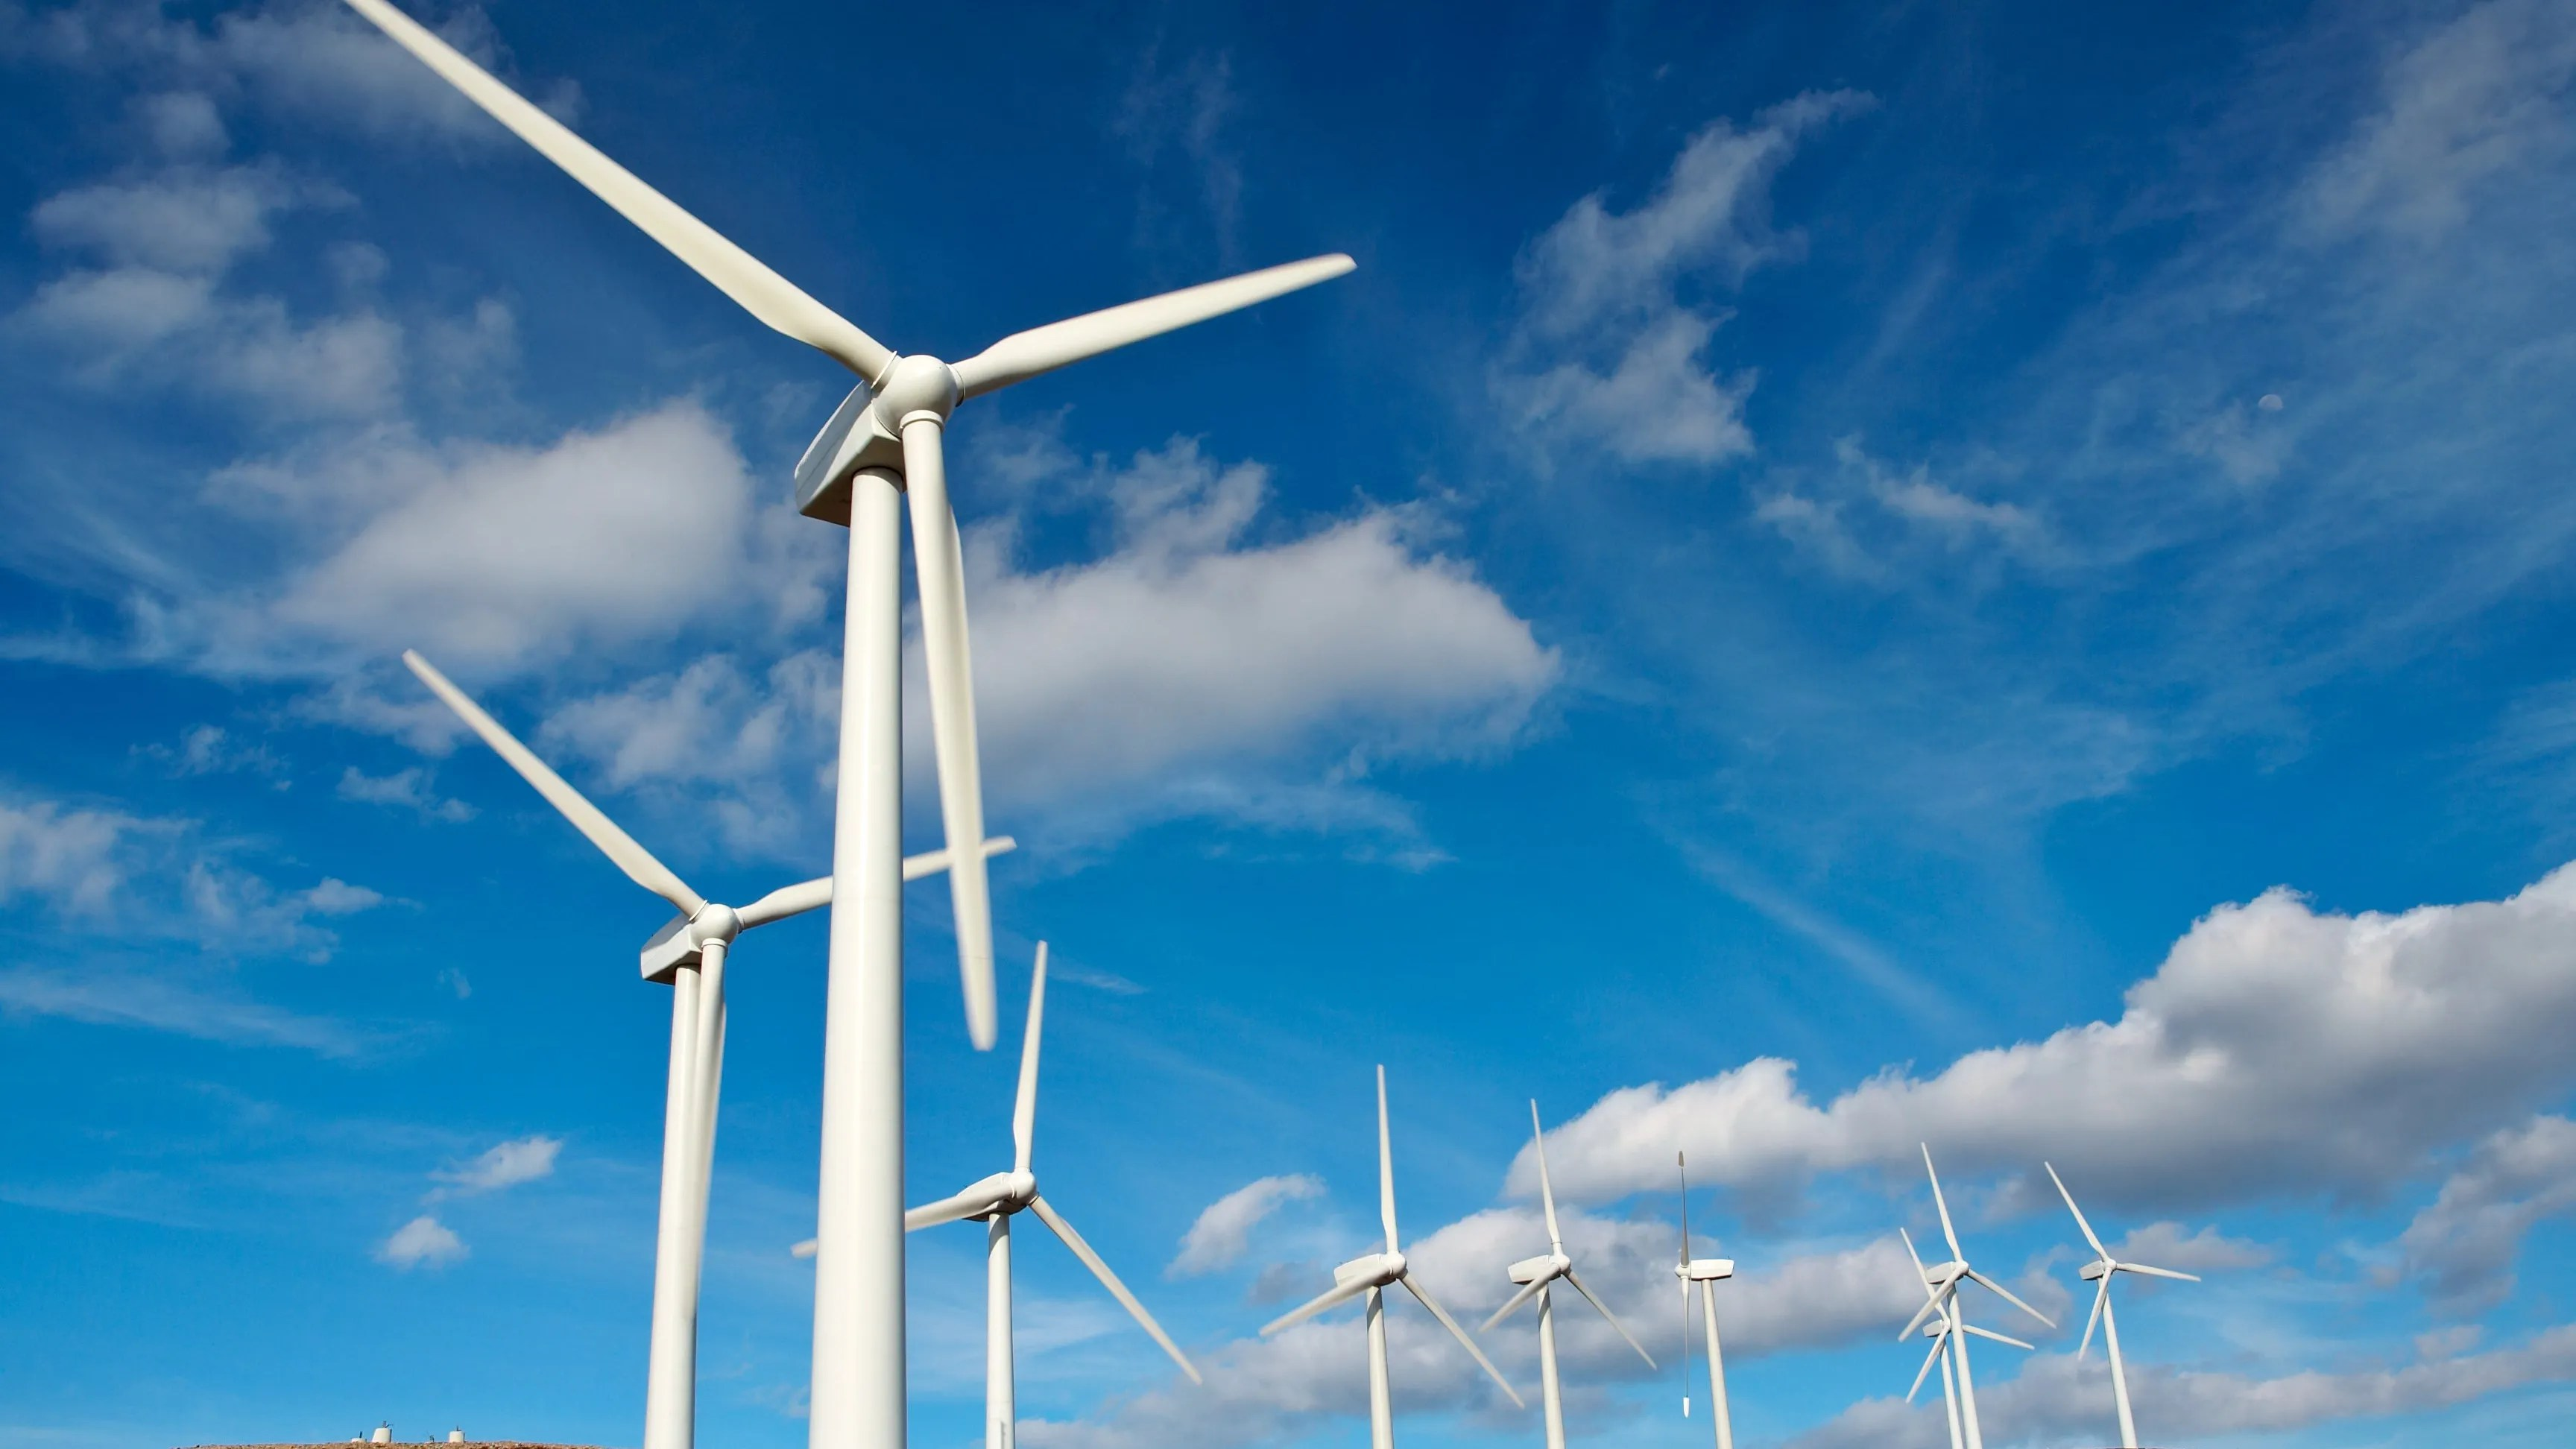 Proposed. controversial restrictions on wind turbines pop up again in Kansas - Flipboard